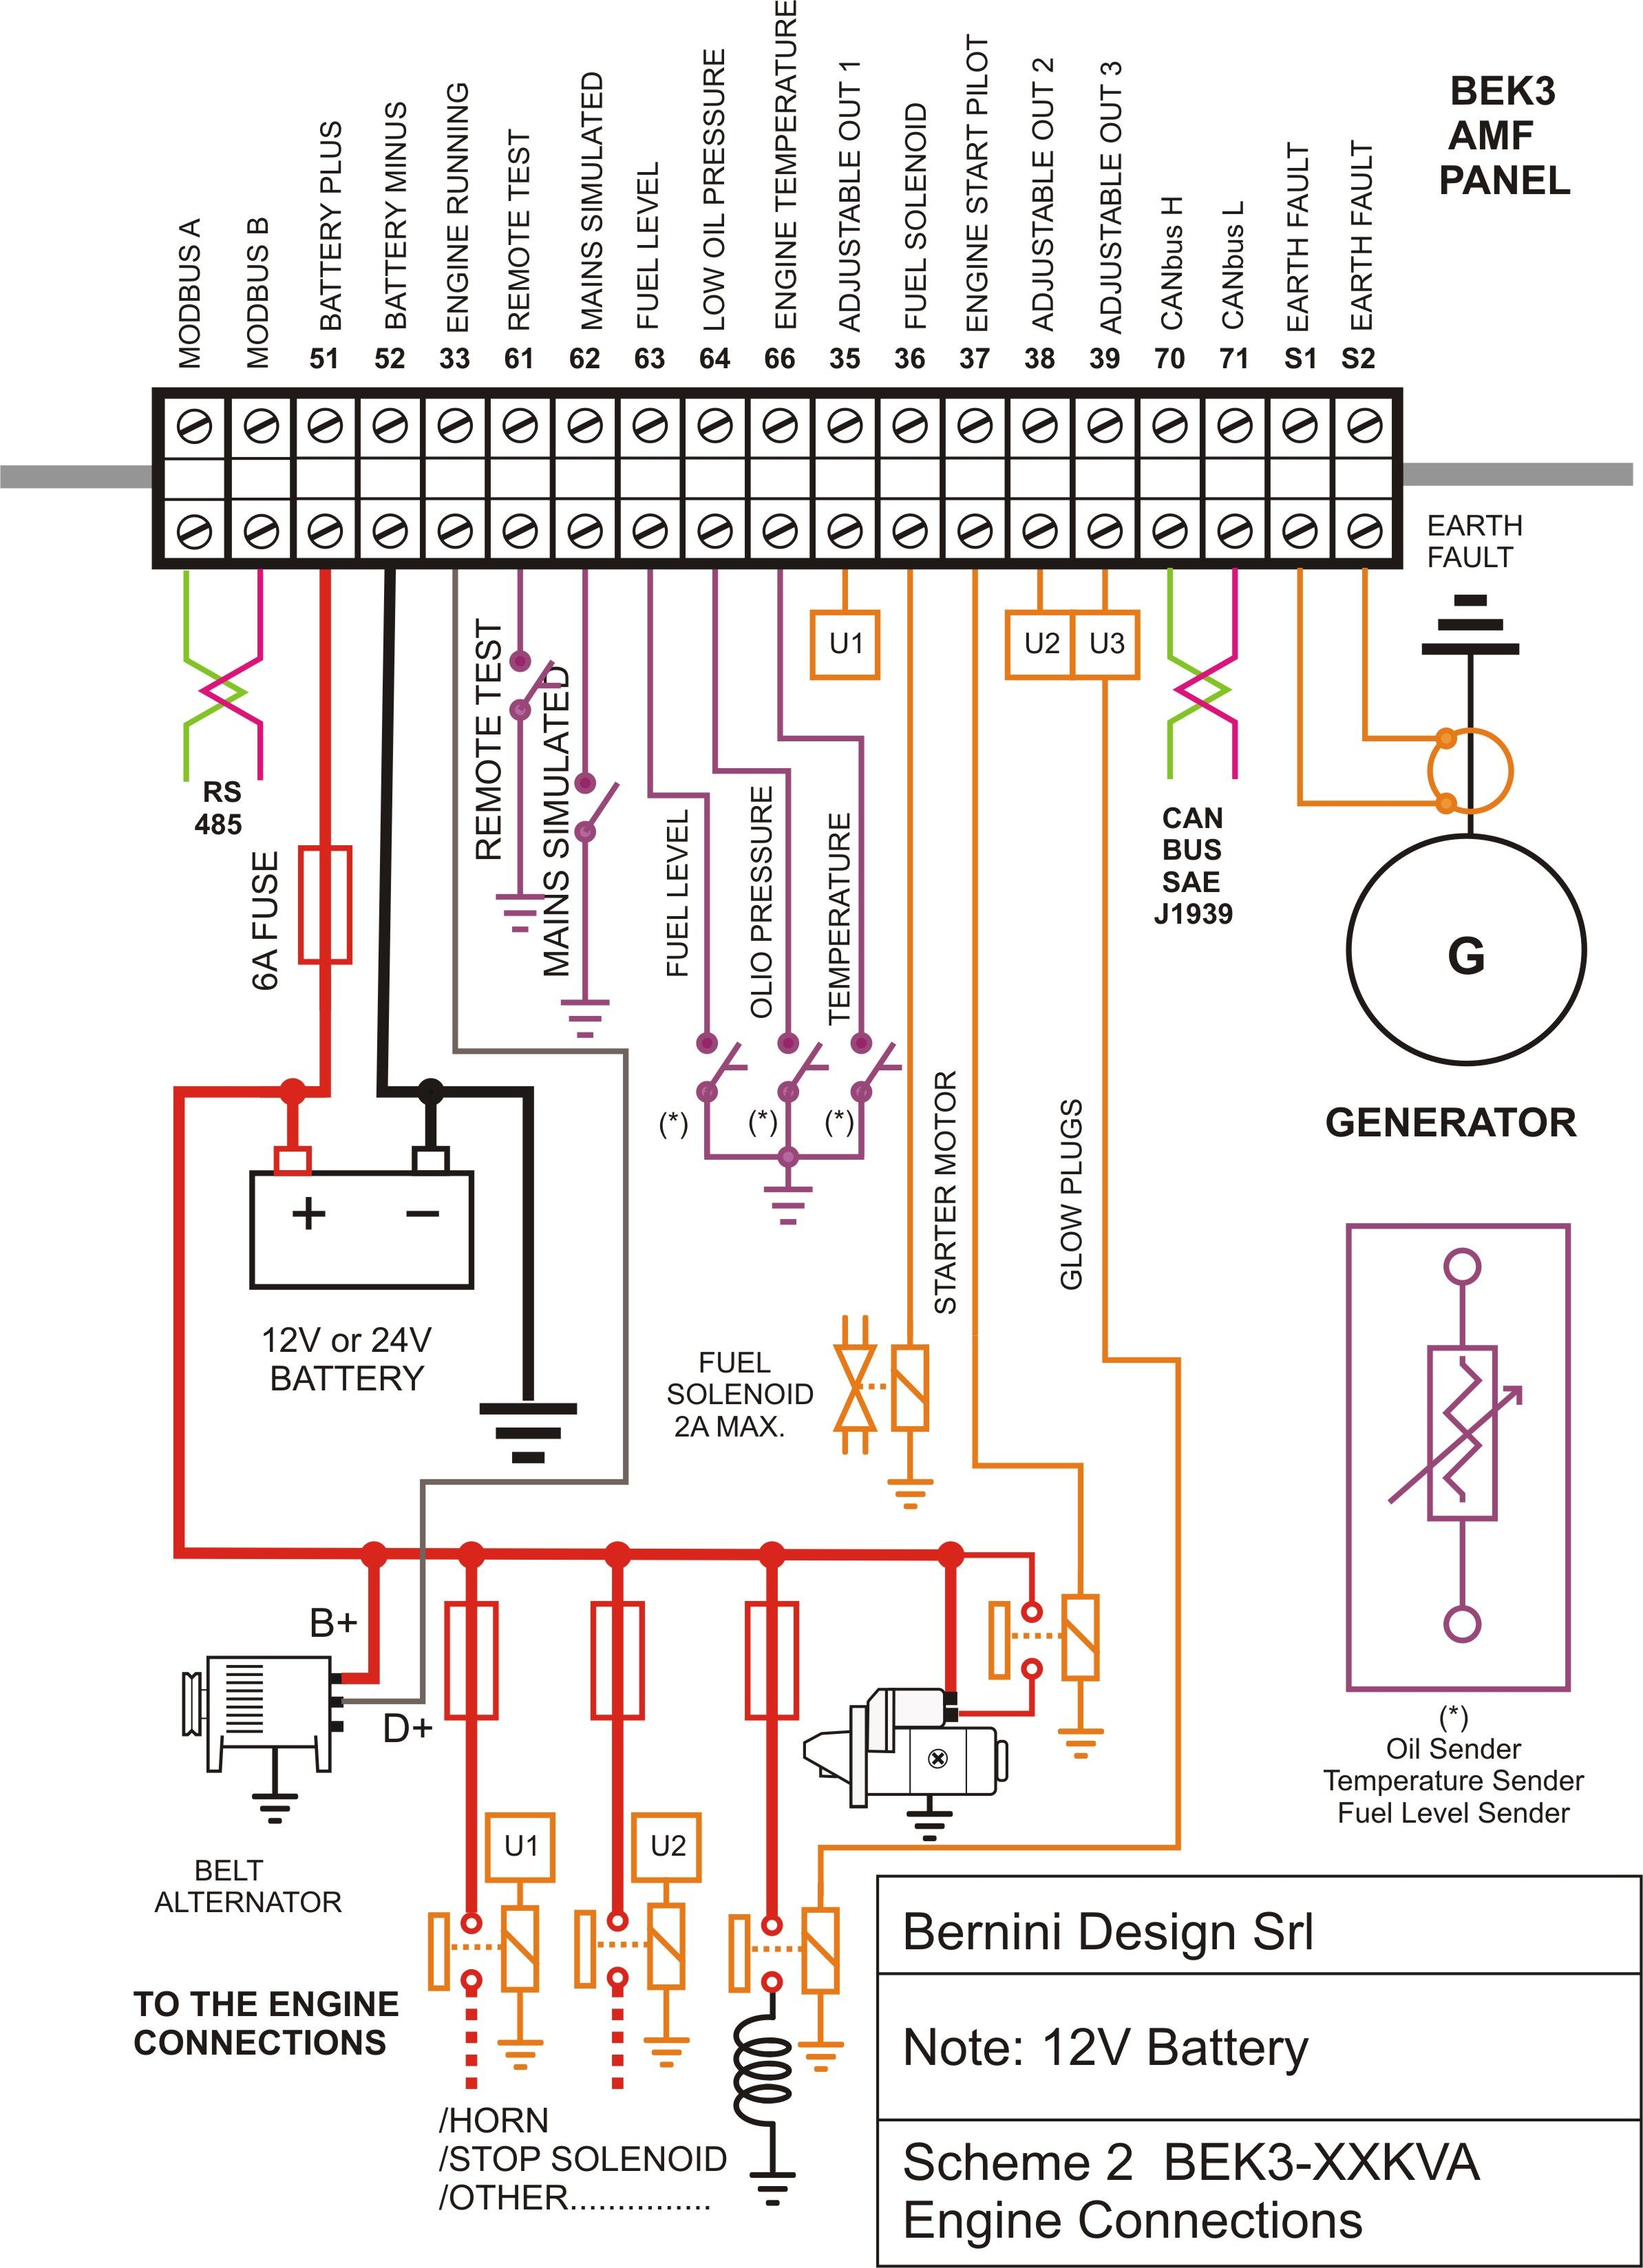 Diesel Generator Control Panel Wiring Diagram Engine Connections - Electrical Panel Wiring Diagram